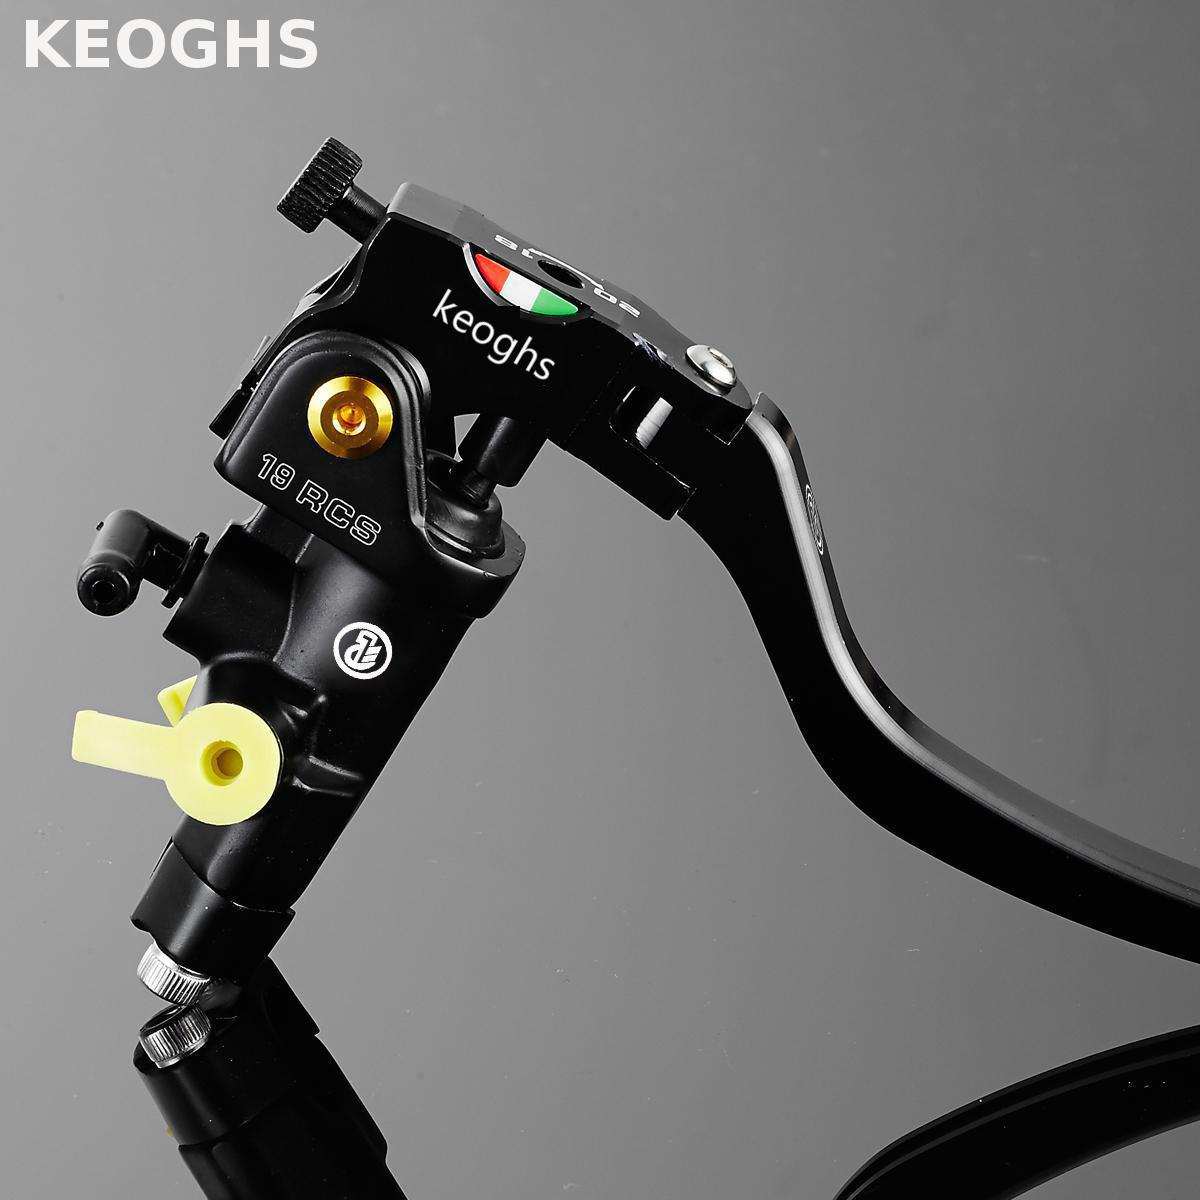 KEOGHS Motorcycle 22mm 7/8'' Universal Brake Master Cylinder Left And Right Cnc Aluminum Hydraulic Brake System For Honda Yamaha for honda cb600f cb900f hornet cb1000r motorcycle upgrade front brake system radial brake master cylinder